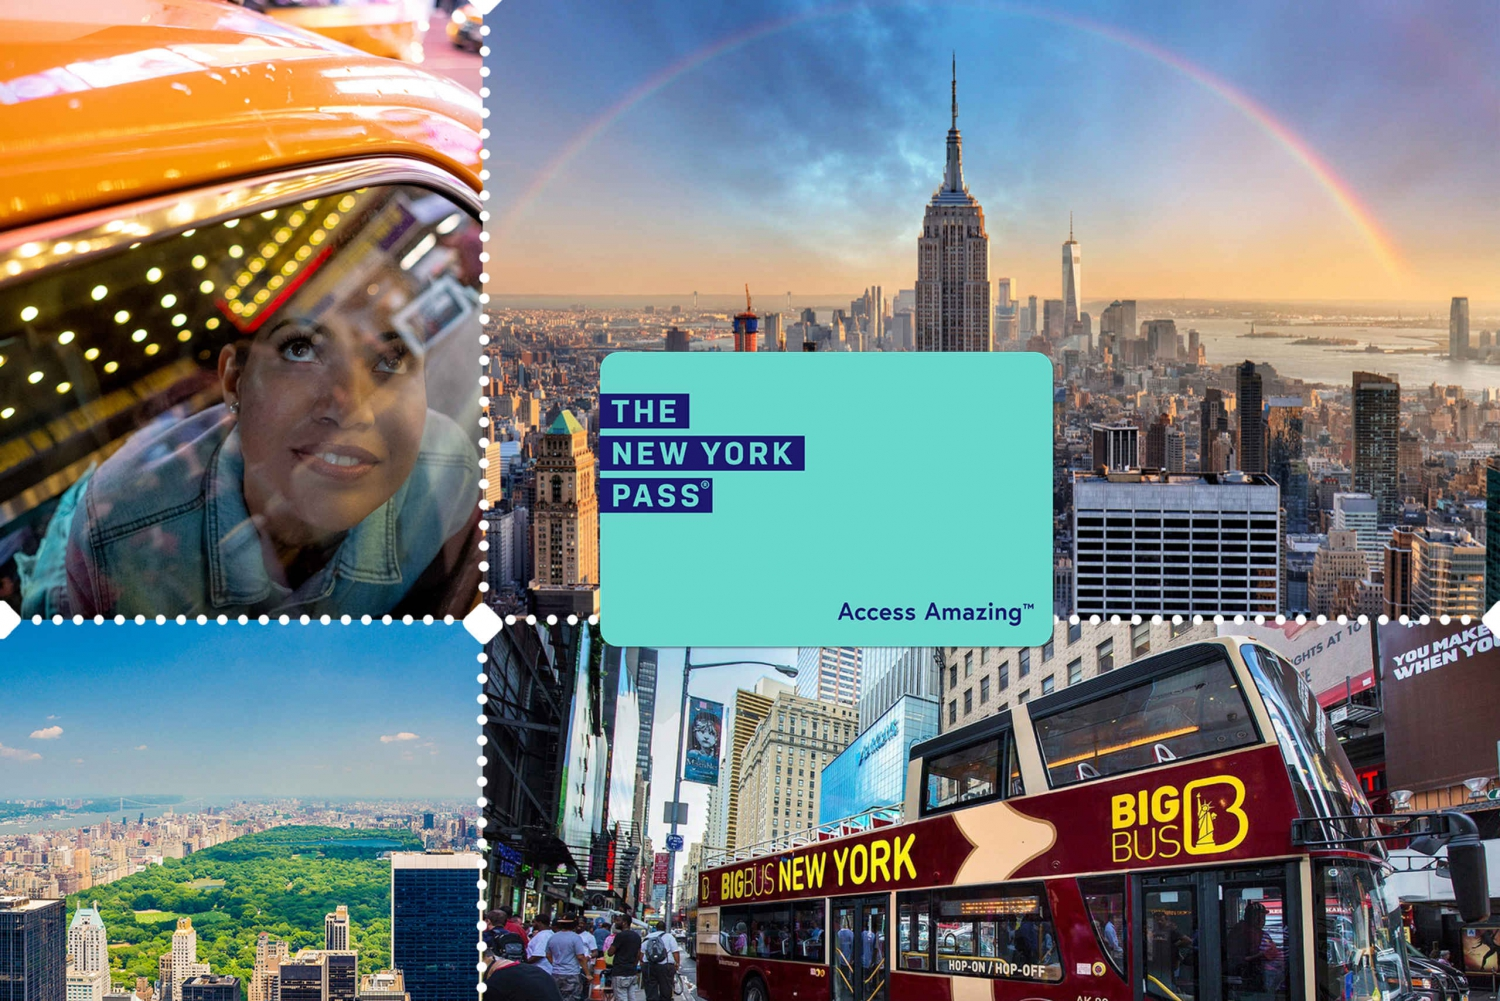 New York Pass: Save up to 45% on top attractions